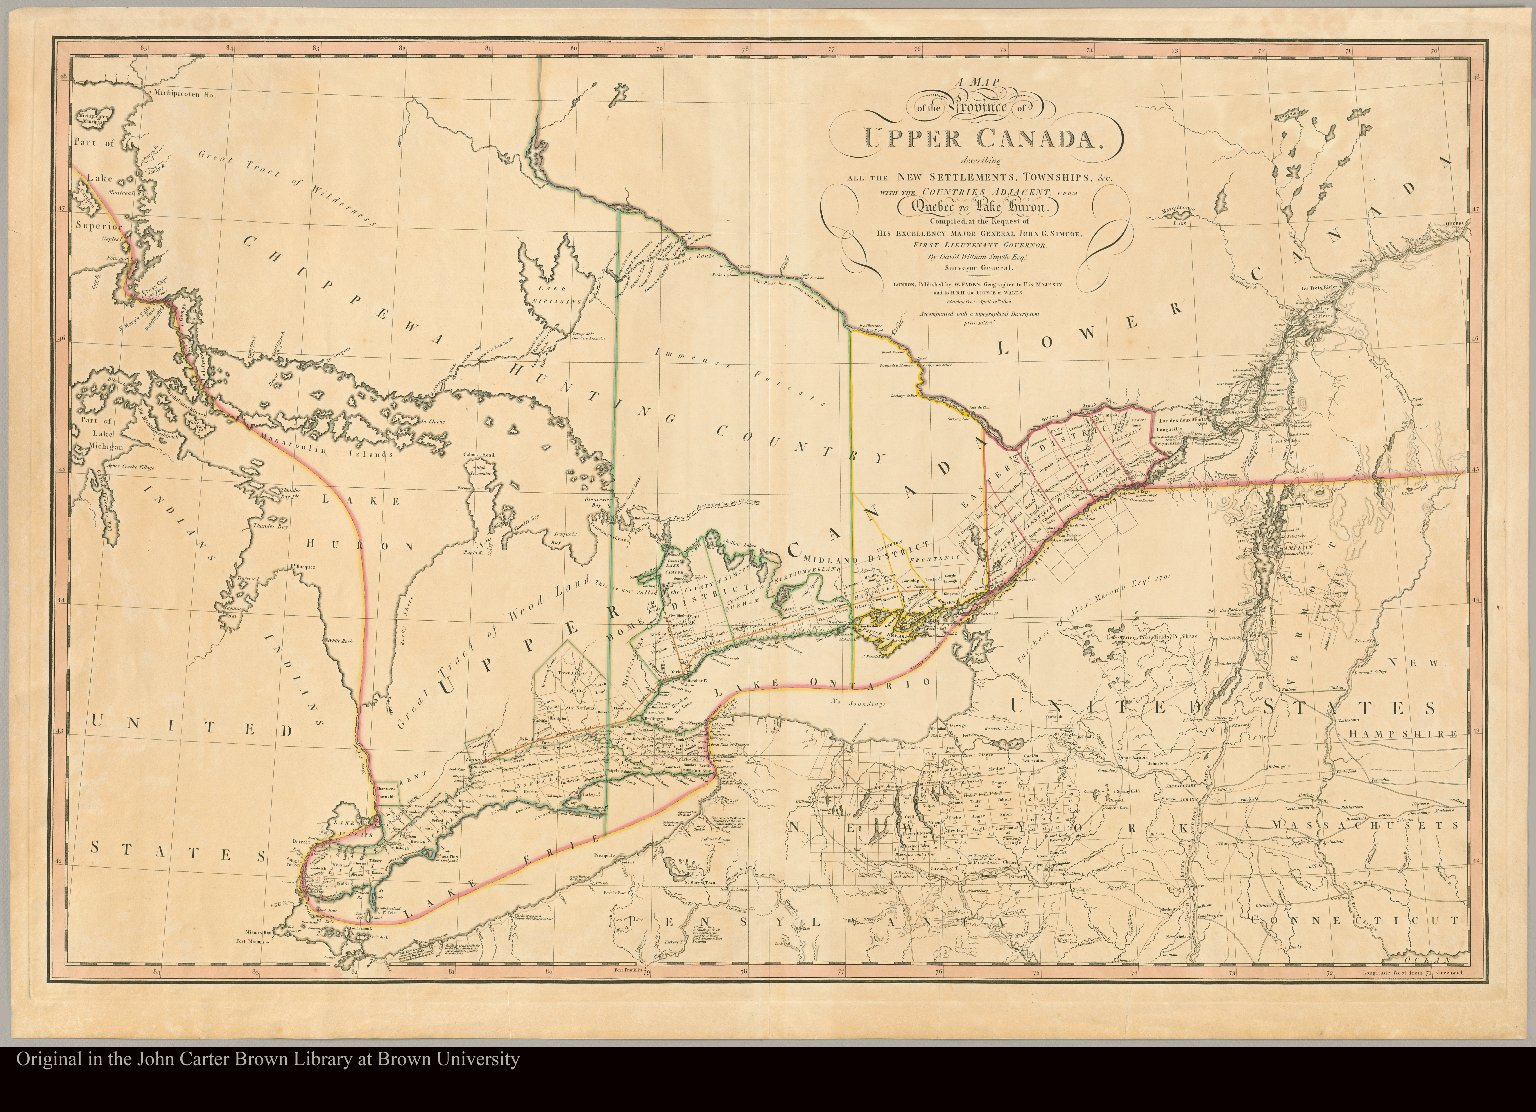 A map of the province of Upper Canada describing all the new settlements, townships, &c., with the countries adjacent, from Quebec to Lake Huron : compiled at the request of His Excellency Major General John G. Simcoe, First Lieutenant Governor / cby David William Smyth, Esqr., Surveyor General